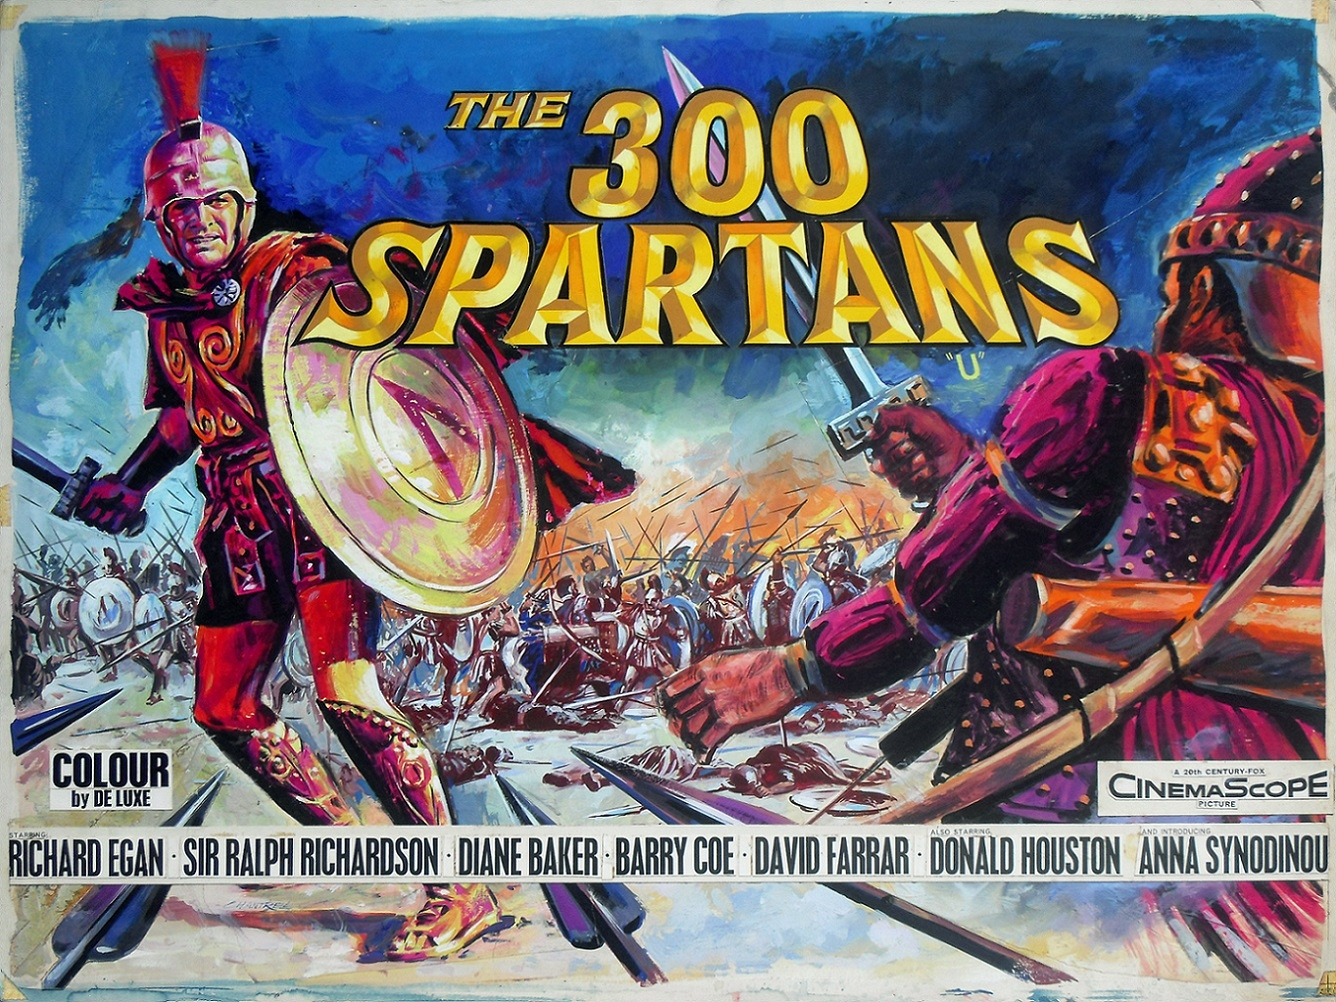 THE 300 SPARTANS (1962) - movie poster painting, in Terry Doyle's ...